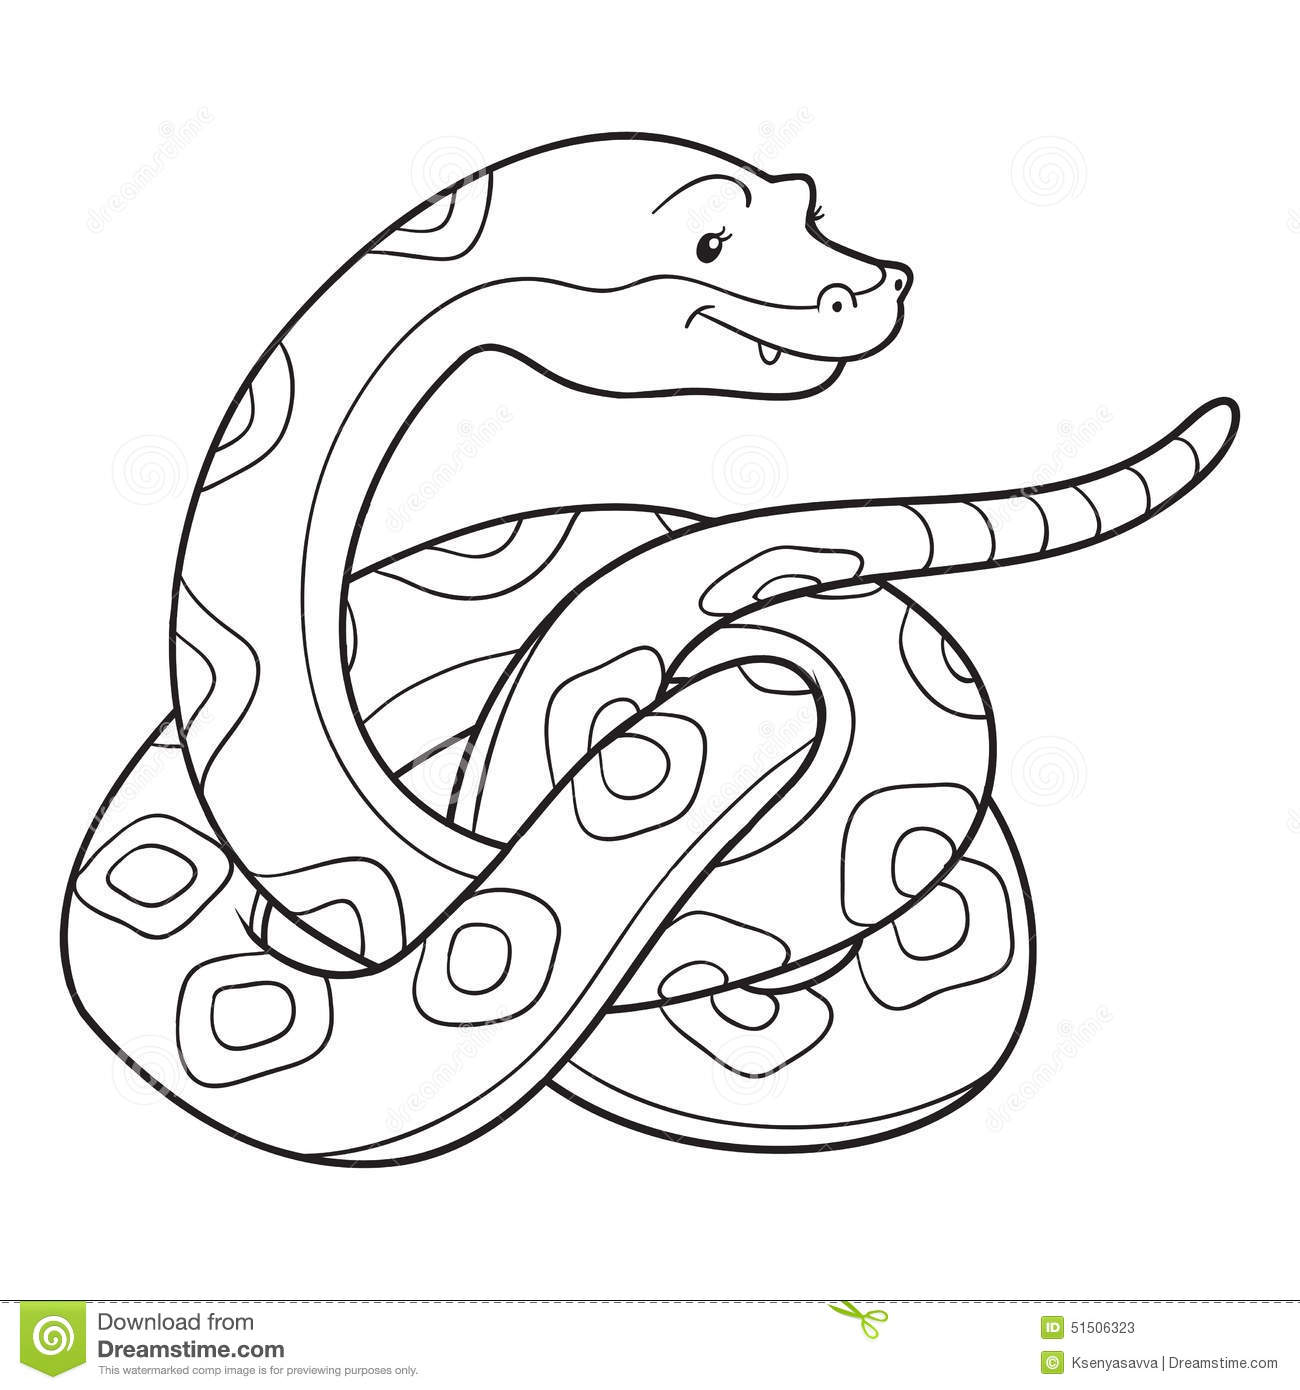 Libro Da Colorare Serpente Illustrazione Vettoriale